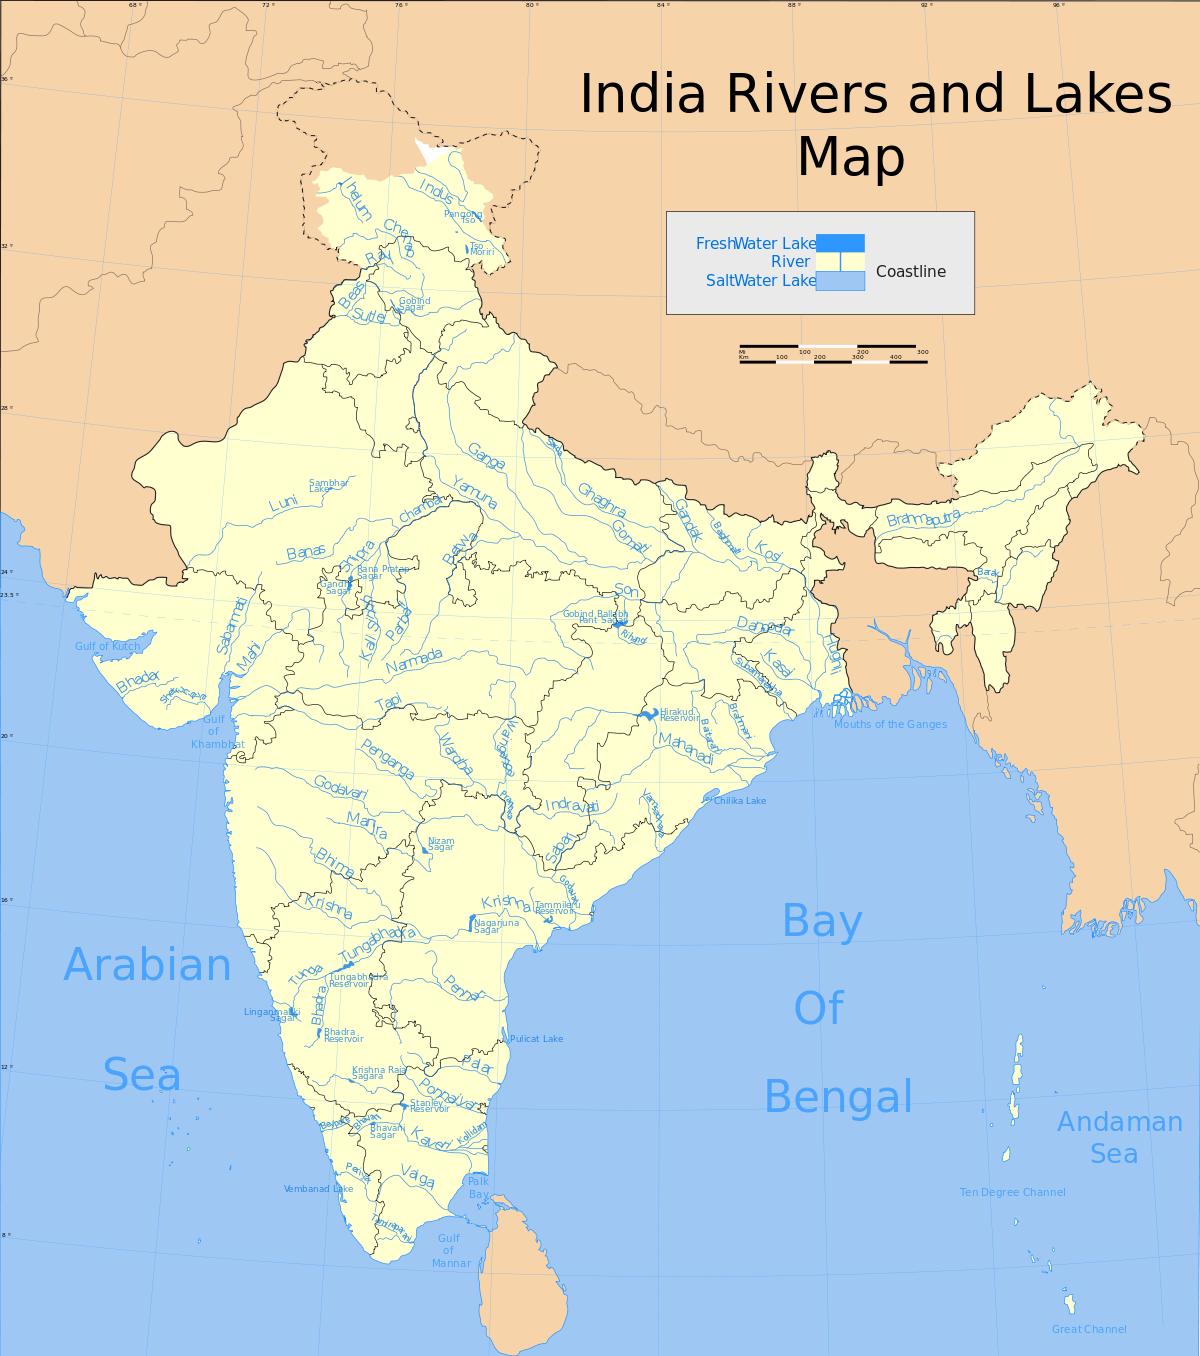 List Of Major Rivers Of India Wikipedia Map Pinterest - What are the major rivers